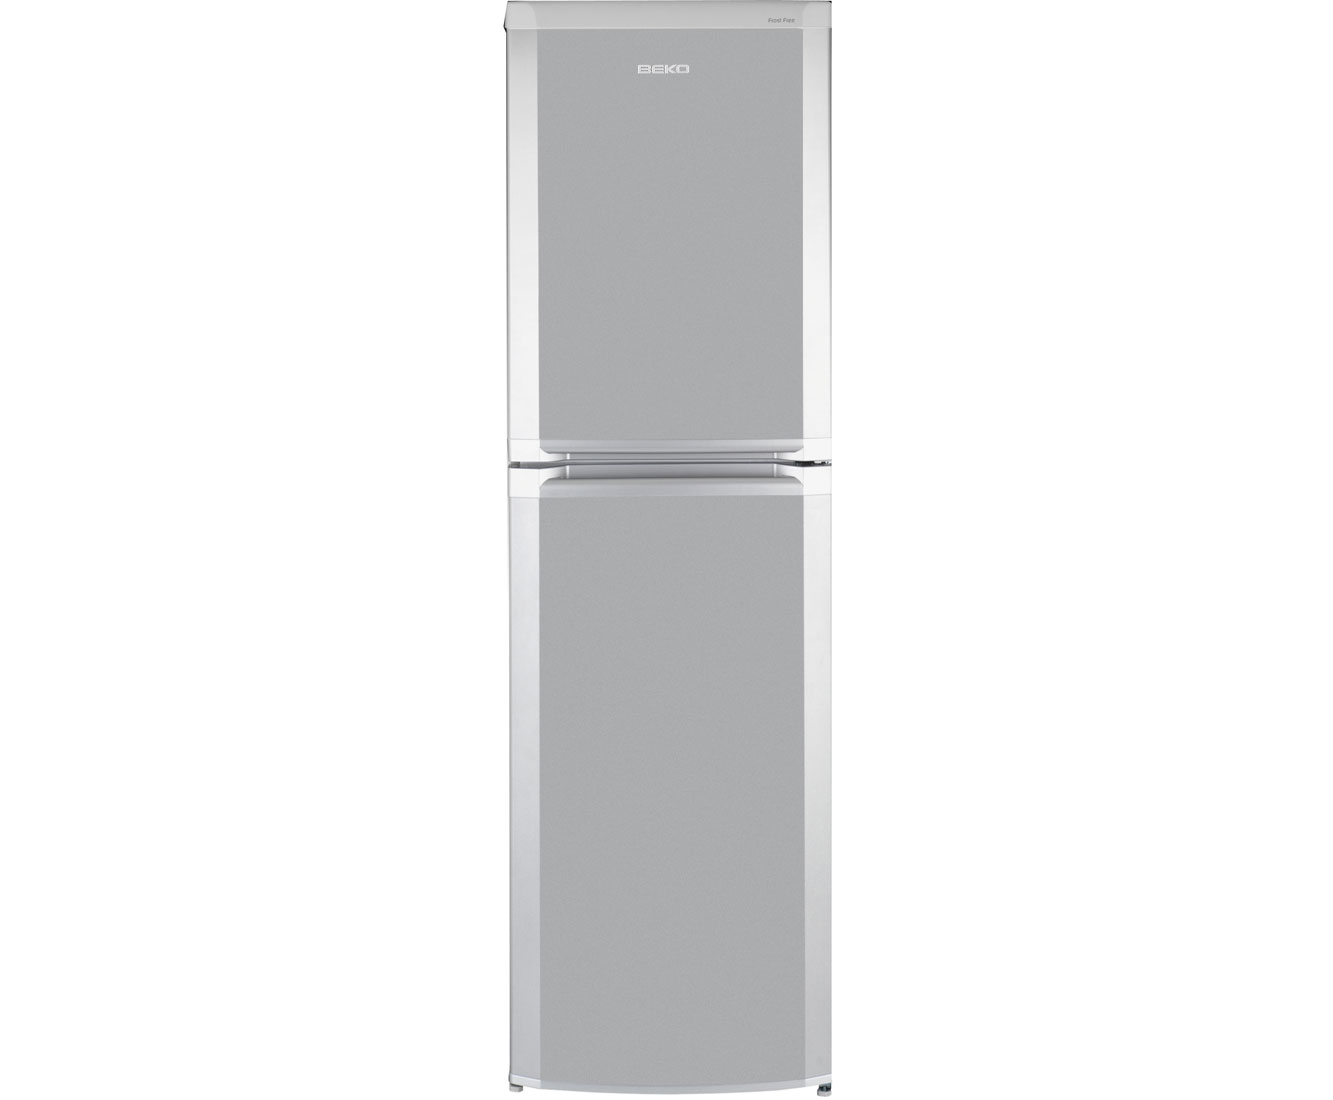 Silver slimline fridge freezer